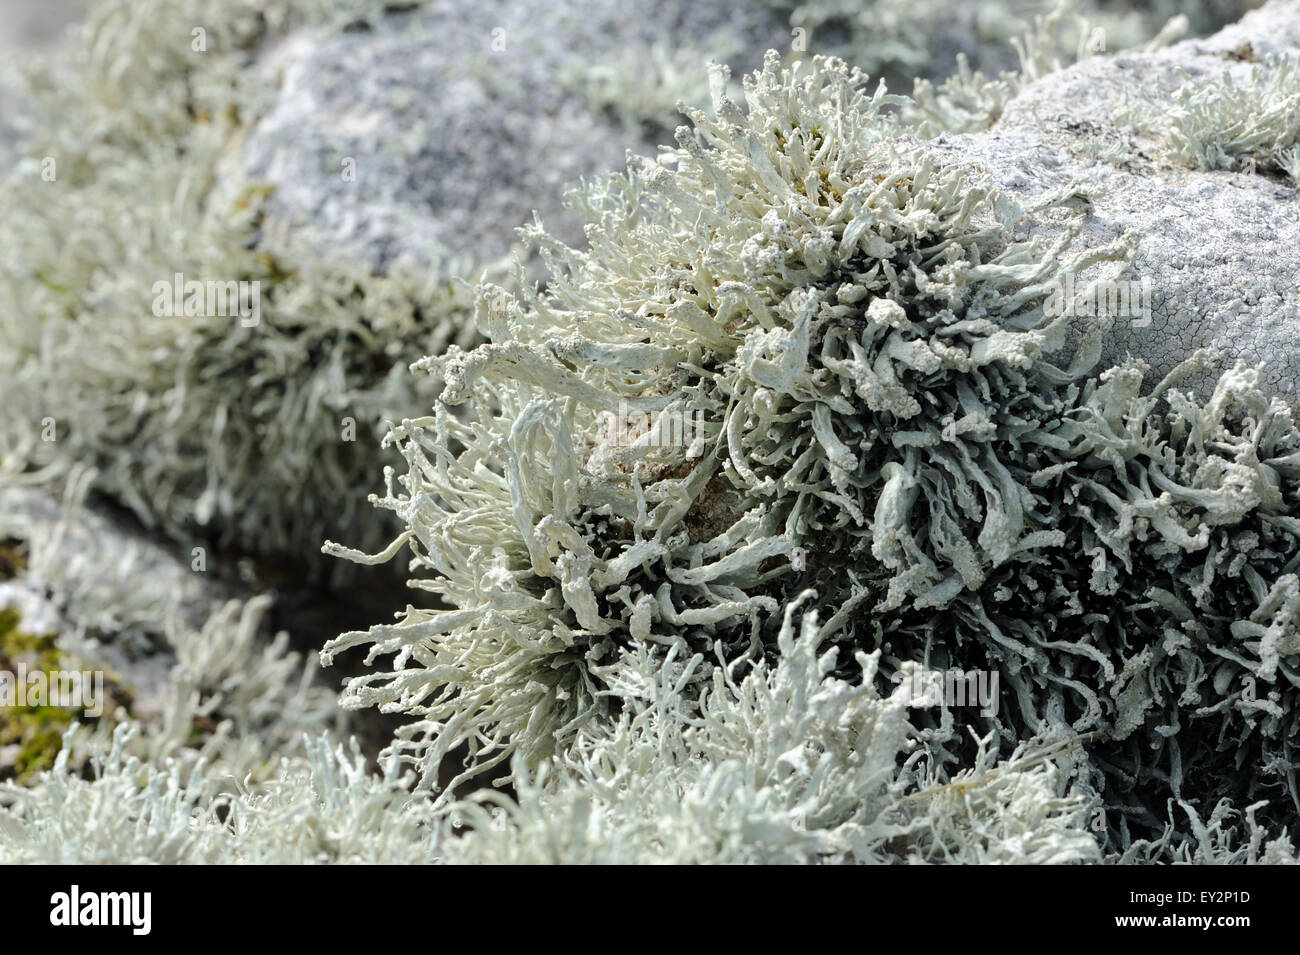 Luxurious, vigorous lichens grow on a stone wall above the beach of Village Bay, evidence of the unpolluted Atlantic - Stock Image